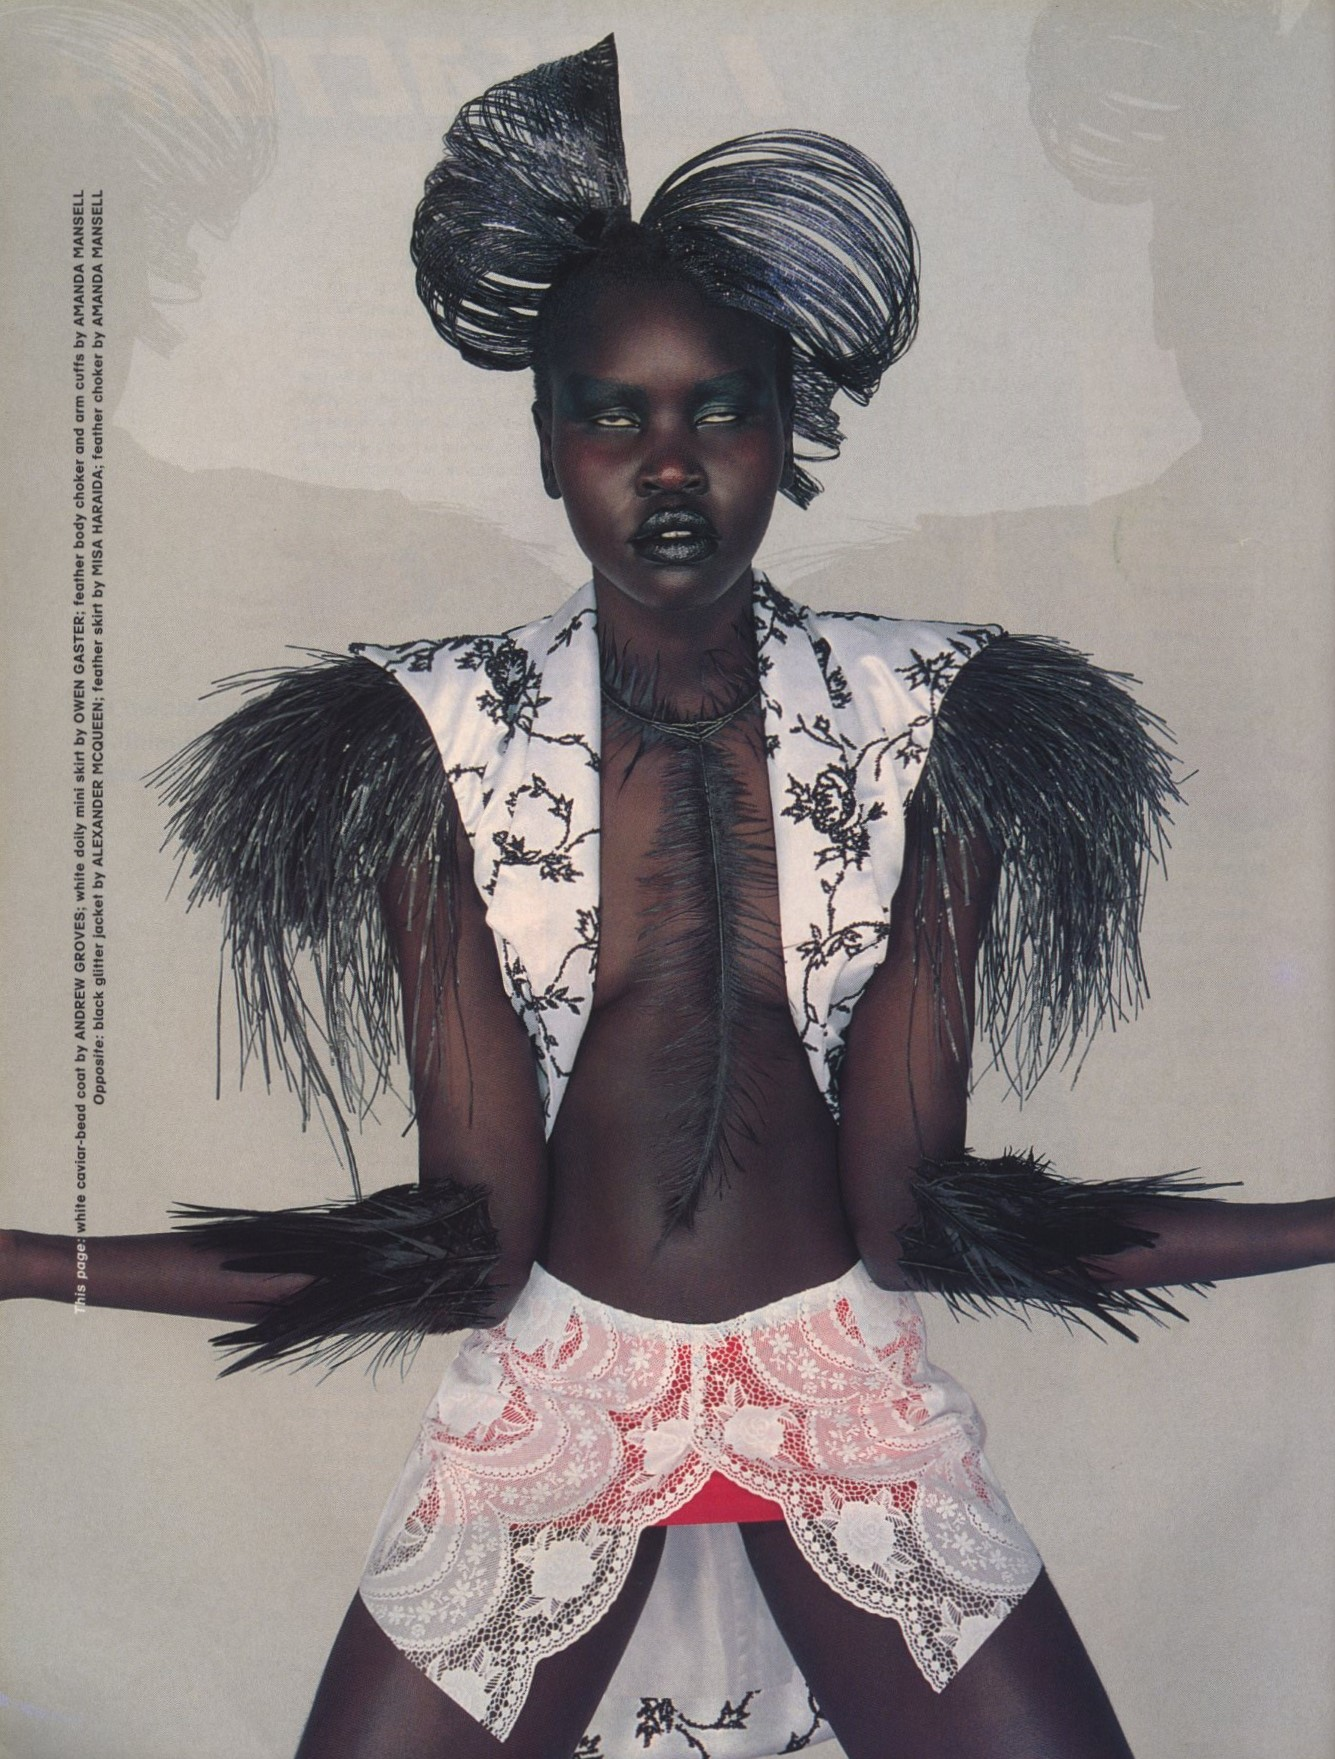 ALEK WEK | PHOTOGRAPHY PETER ROBATHAN | STYLING SETA NILAND | THE FACE NO 13 | FEBRUARY 1998